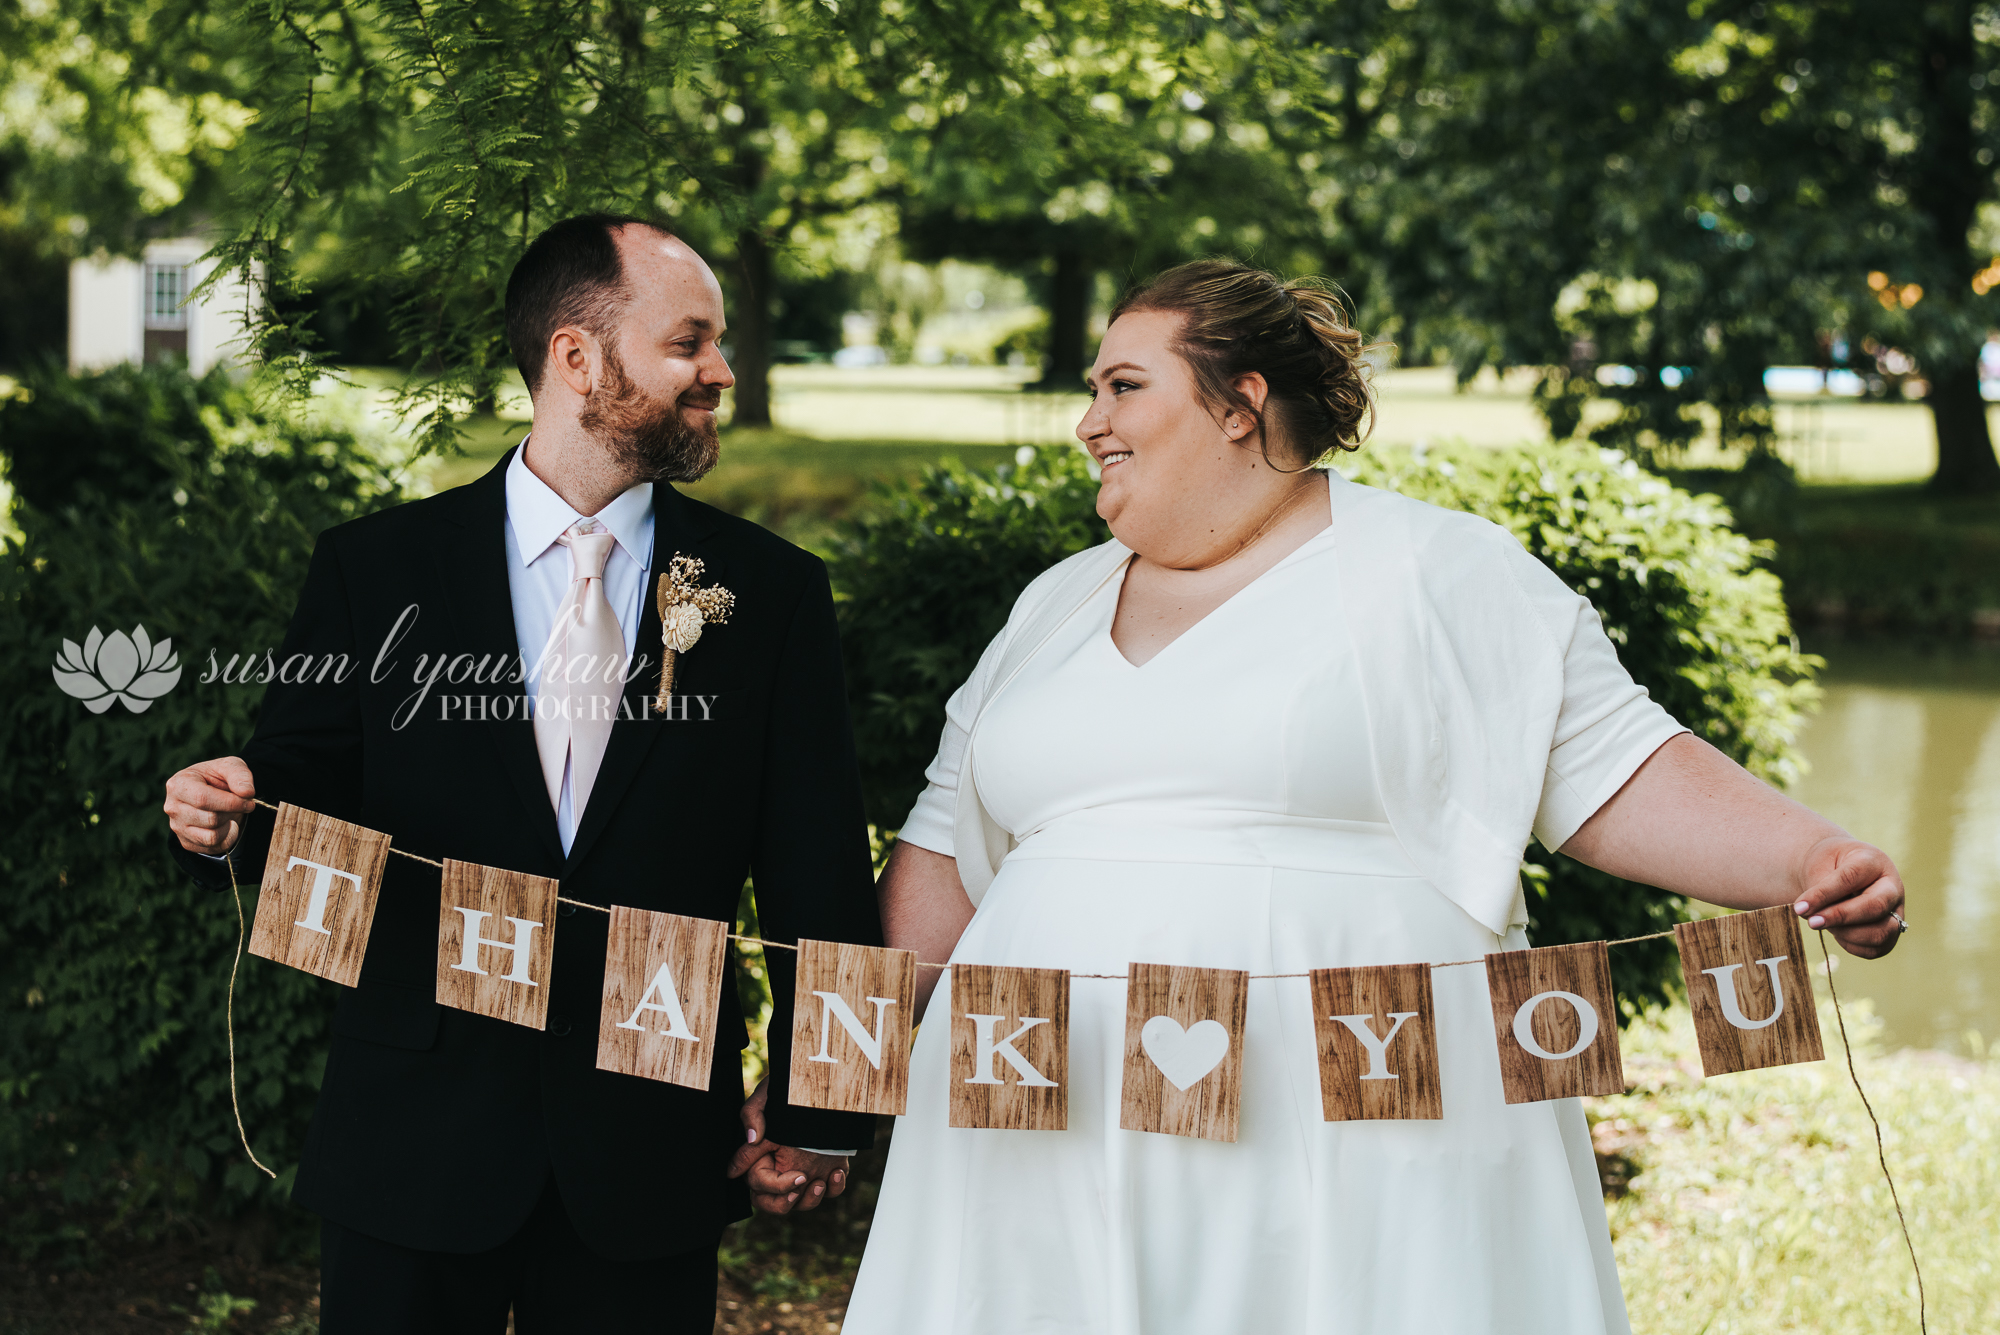 Bill and Sarah Wedding Photos 06-08-2019 SLY Photography -47.jpg